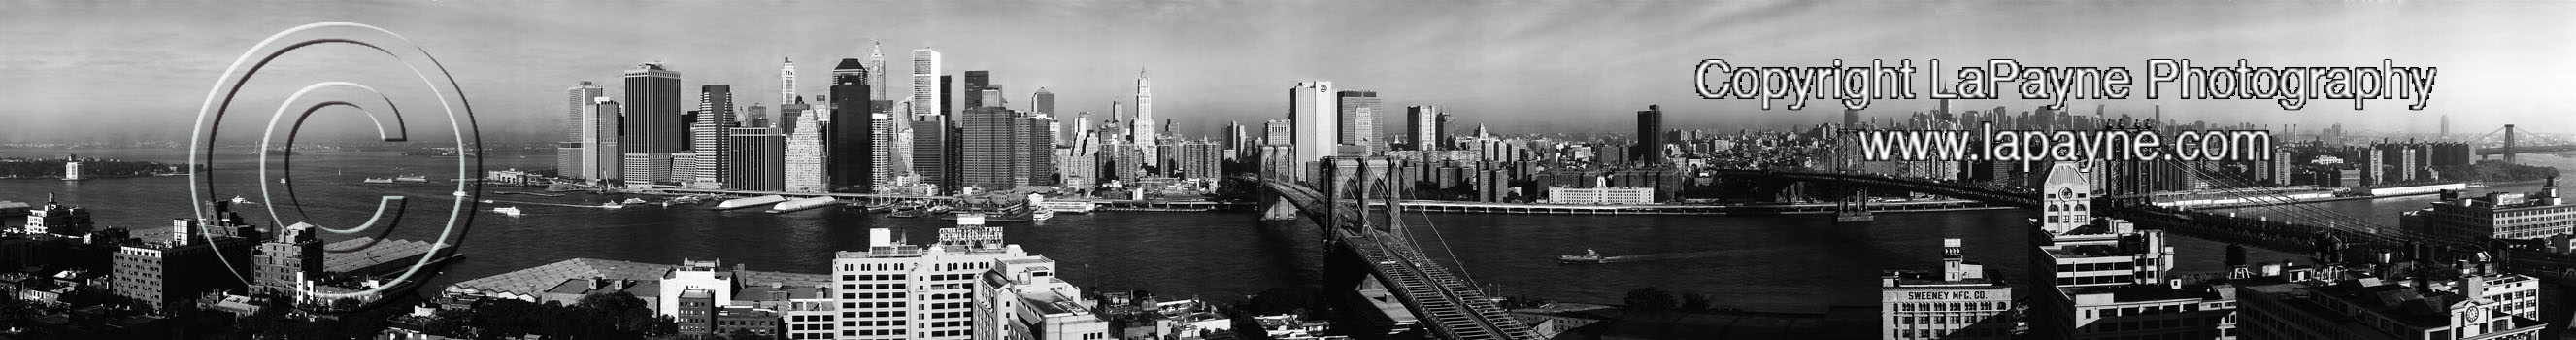 New York 2001 - B&W